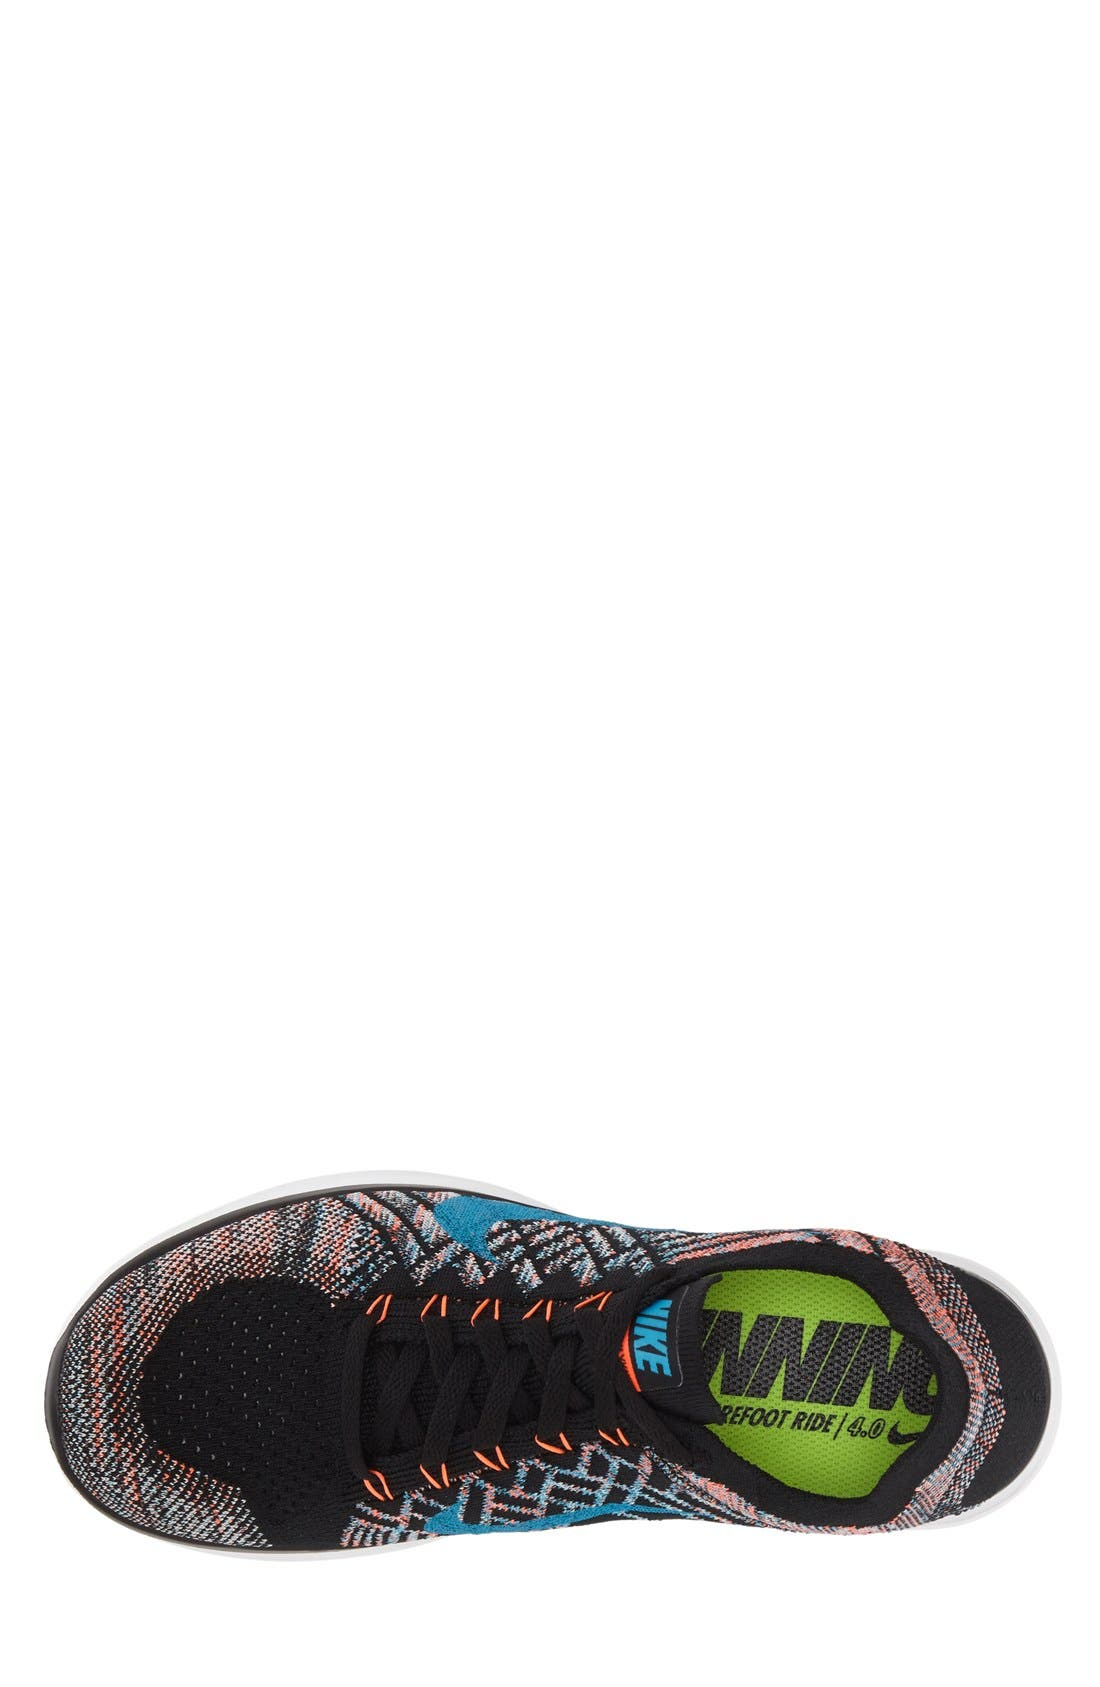 Alternate Image 3  - Nike 'Free Flyknit 4.0' Running Shoe (Men)